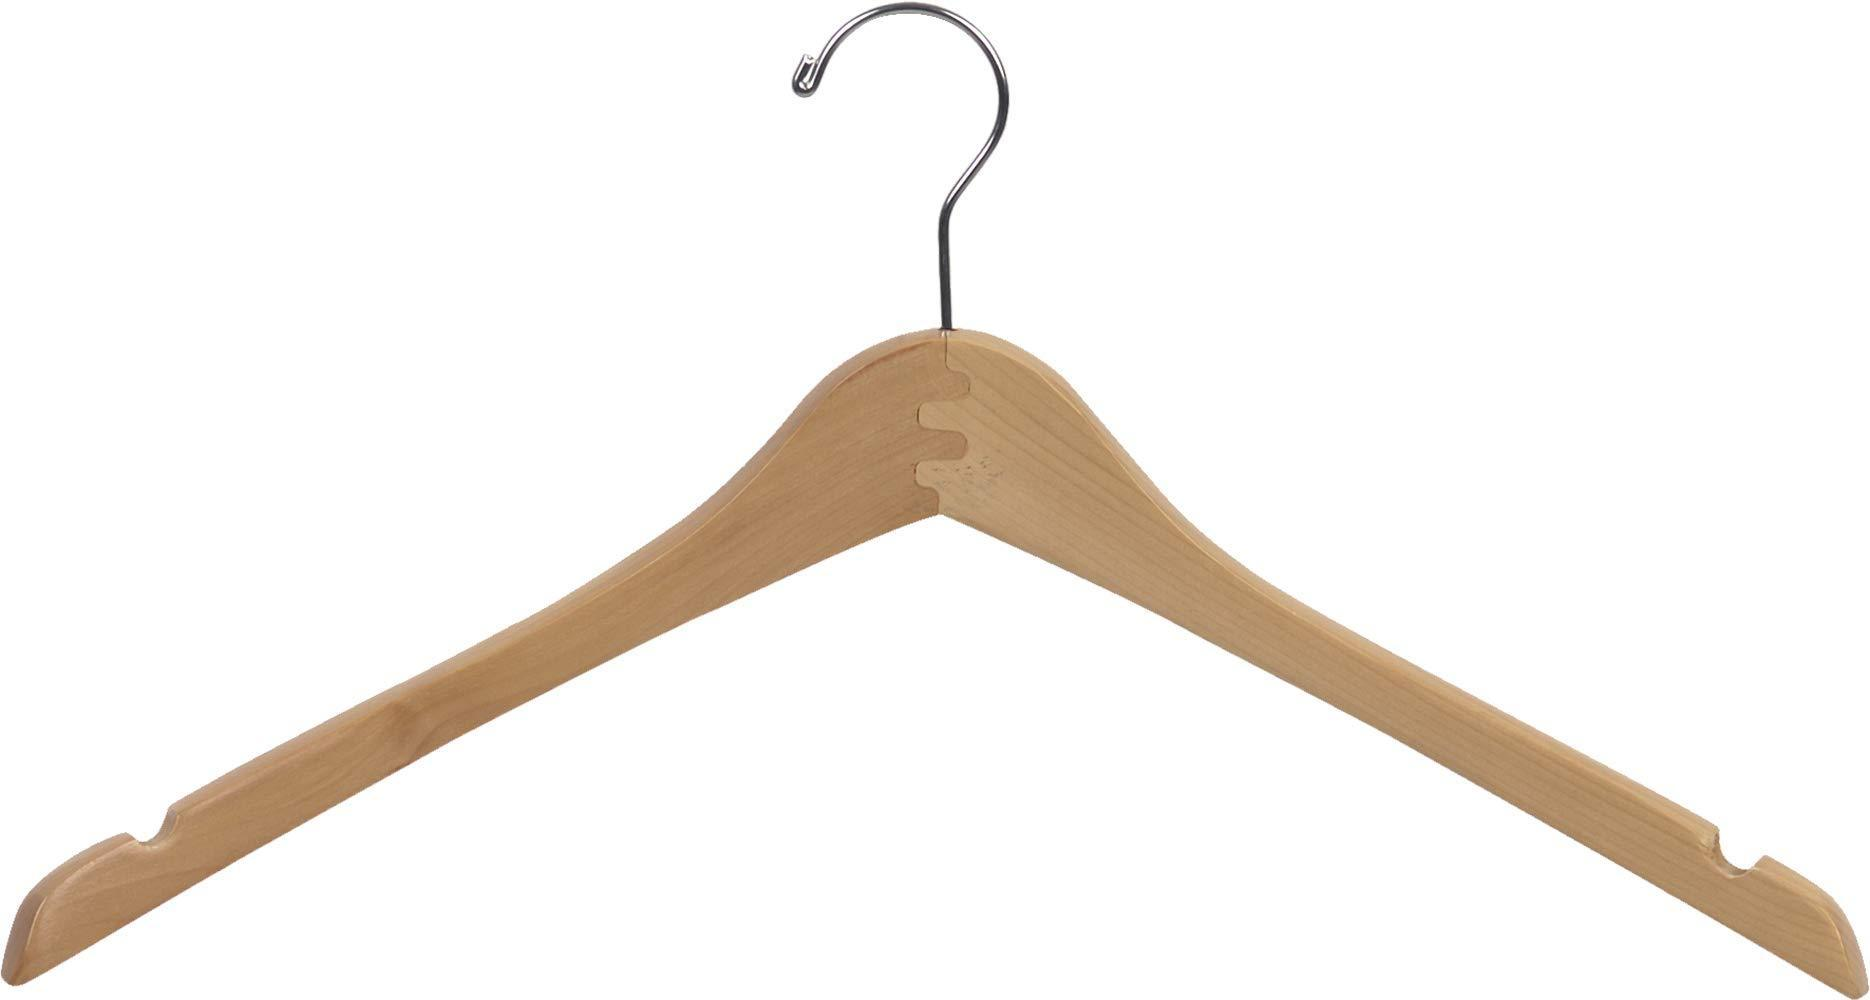 Featured the great american hanger company curved wood top hanger box of 25 17 inch wooden hangers w natural finish chrome swivel hook notches for shirt jacket or coat